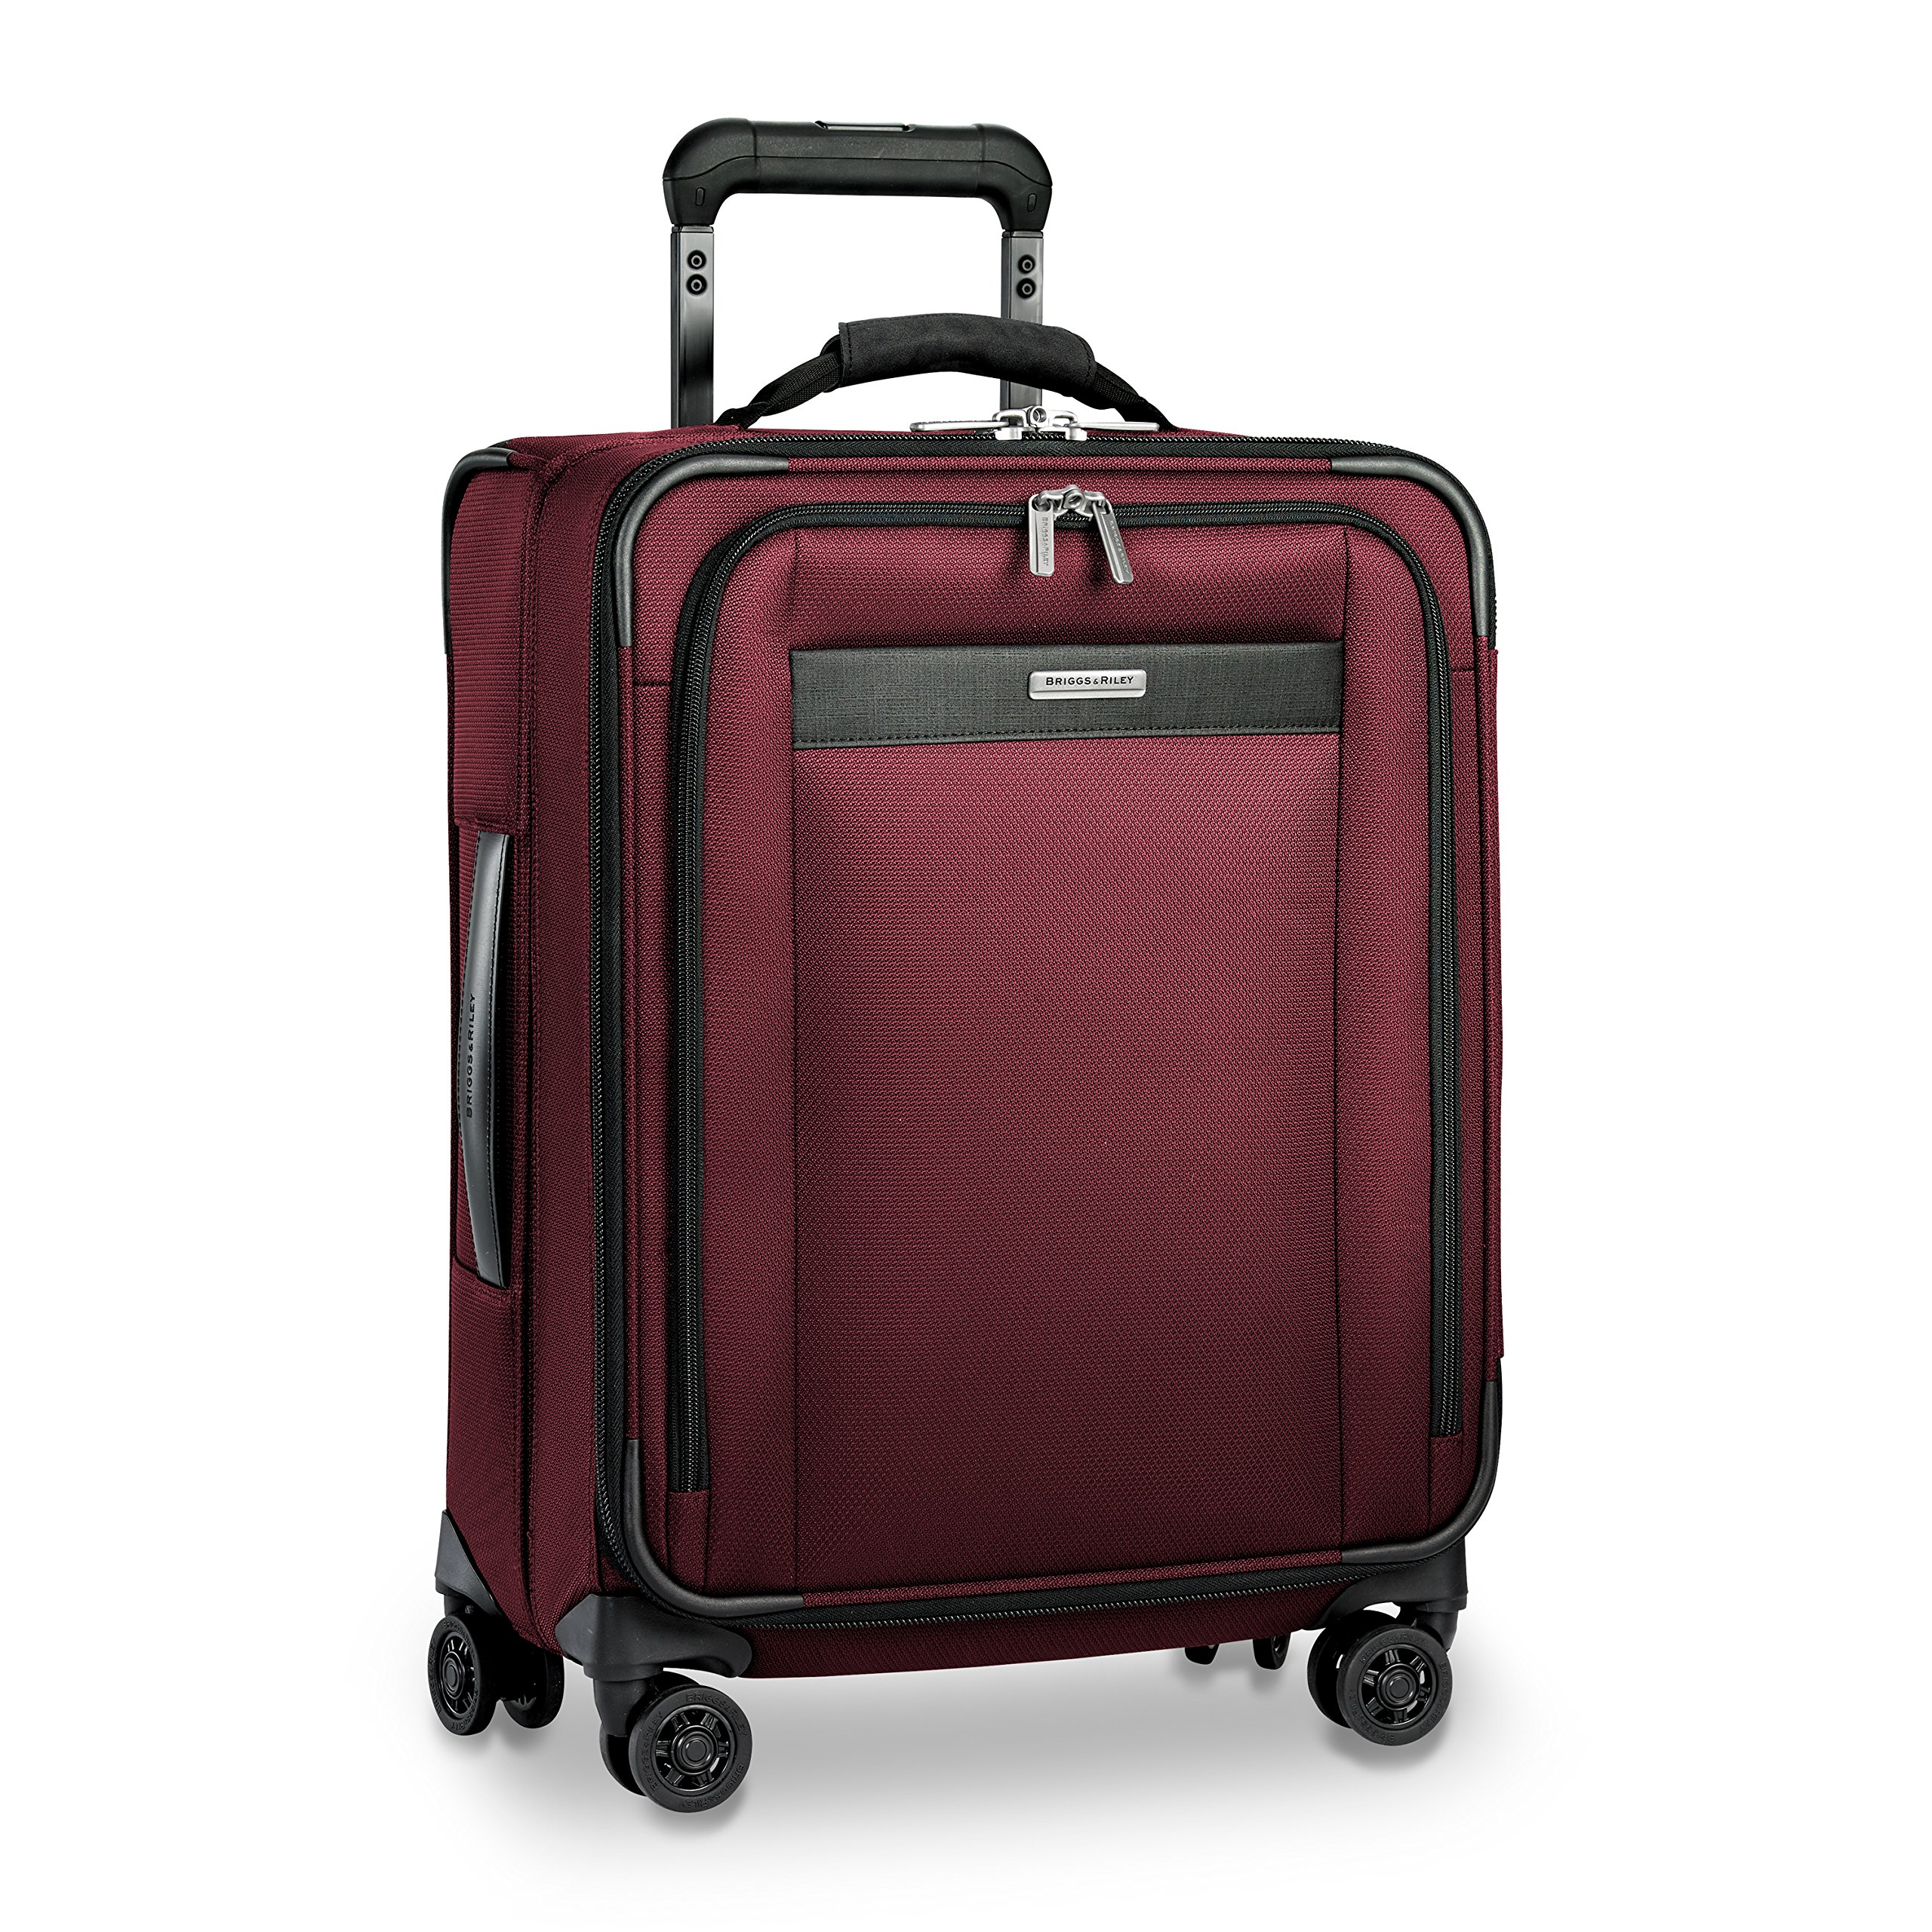 Briggs & Riley Transcend Wide Carry-on Expandable Spinner, Merlot